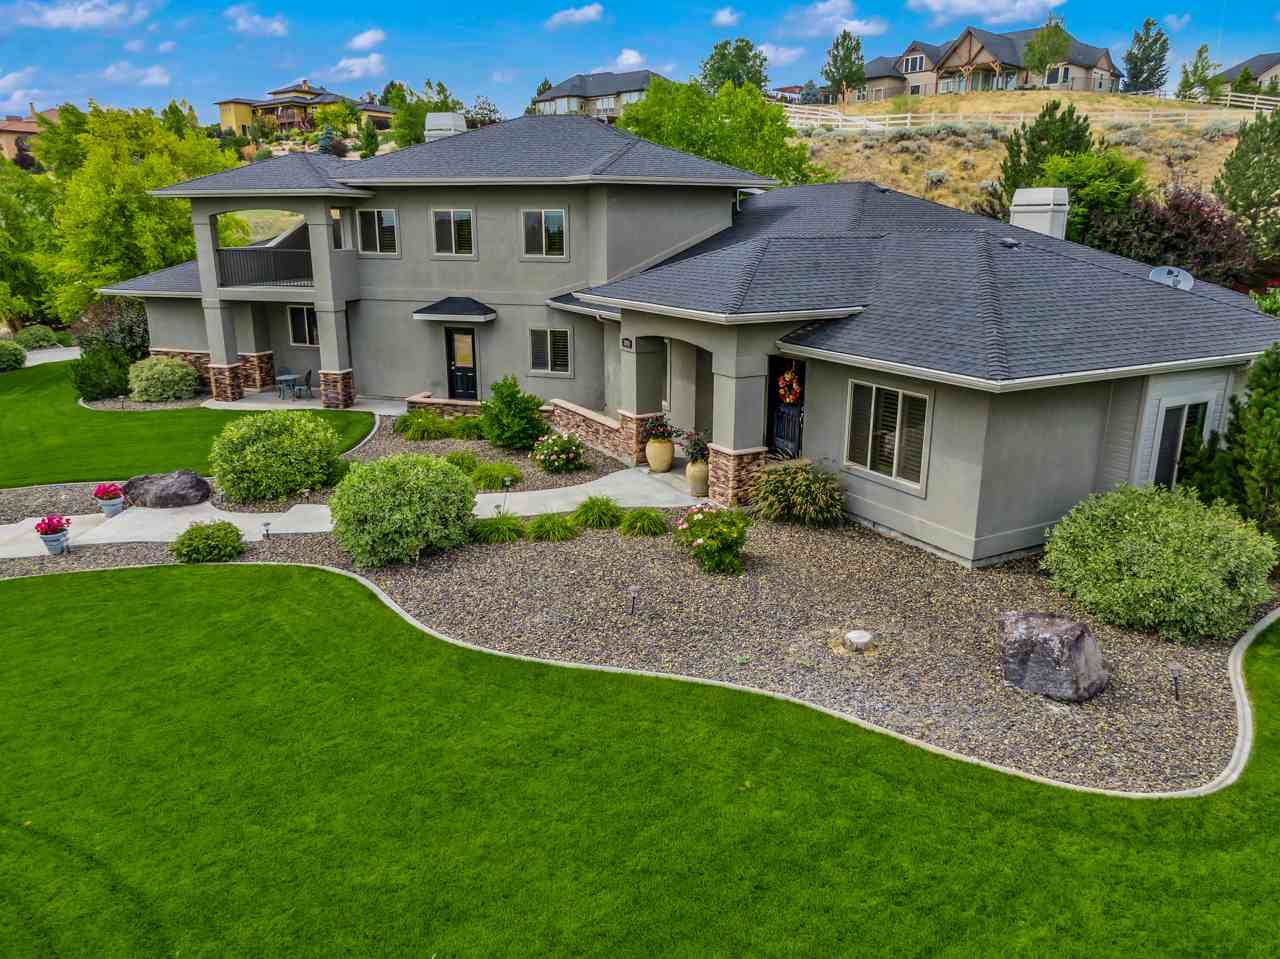 Photo for 7070 Southern Vista Court, Star, ID 83669 (MLS # 98737000)